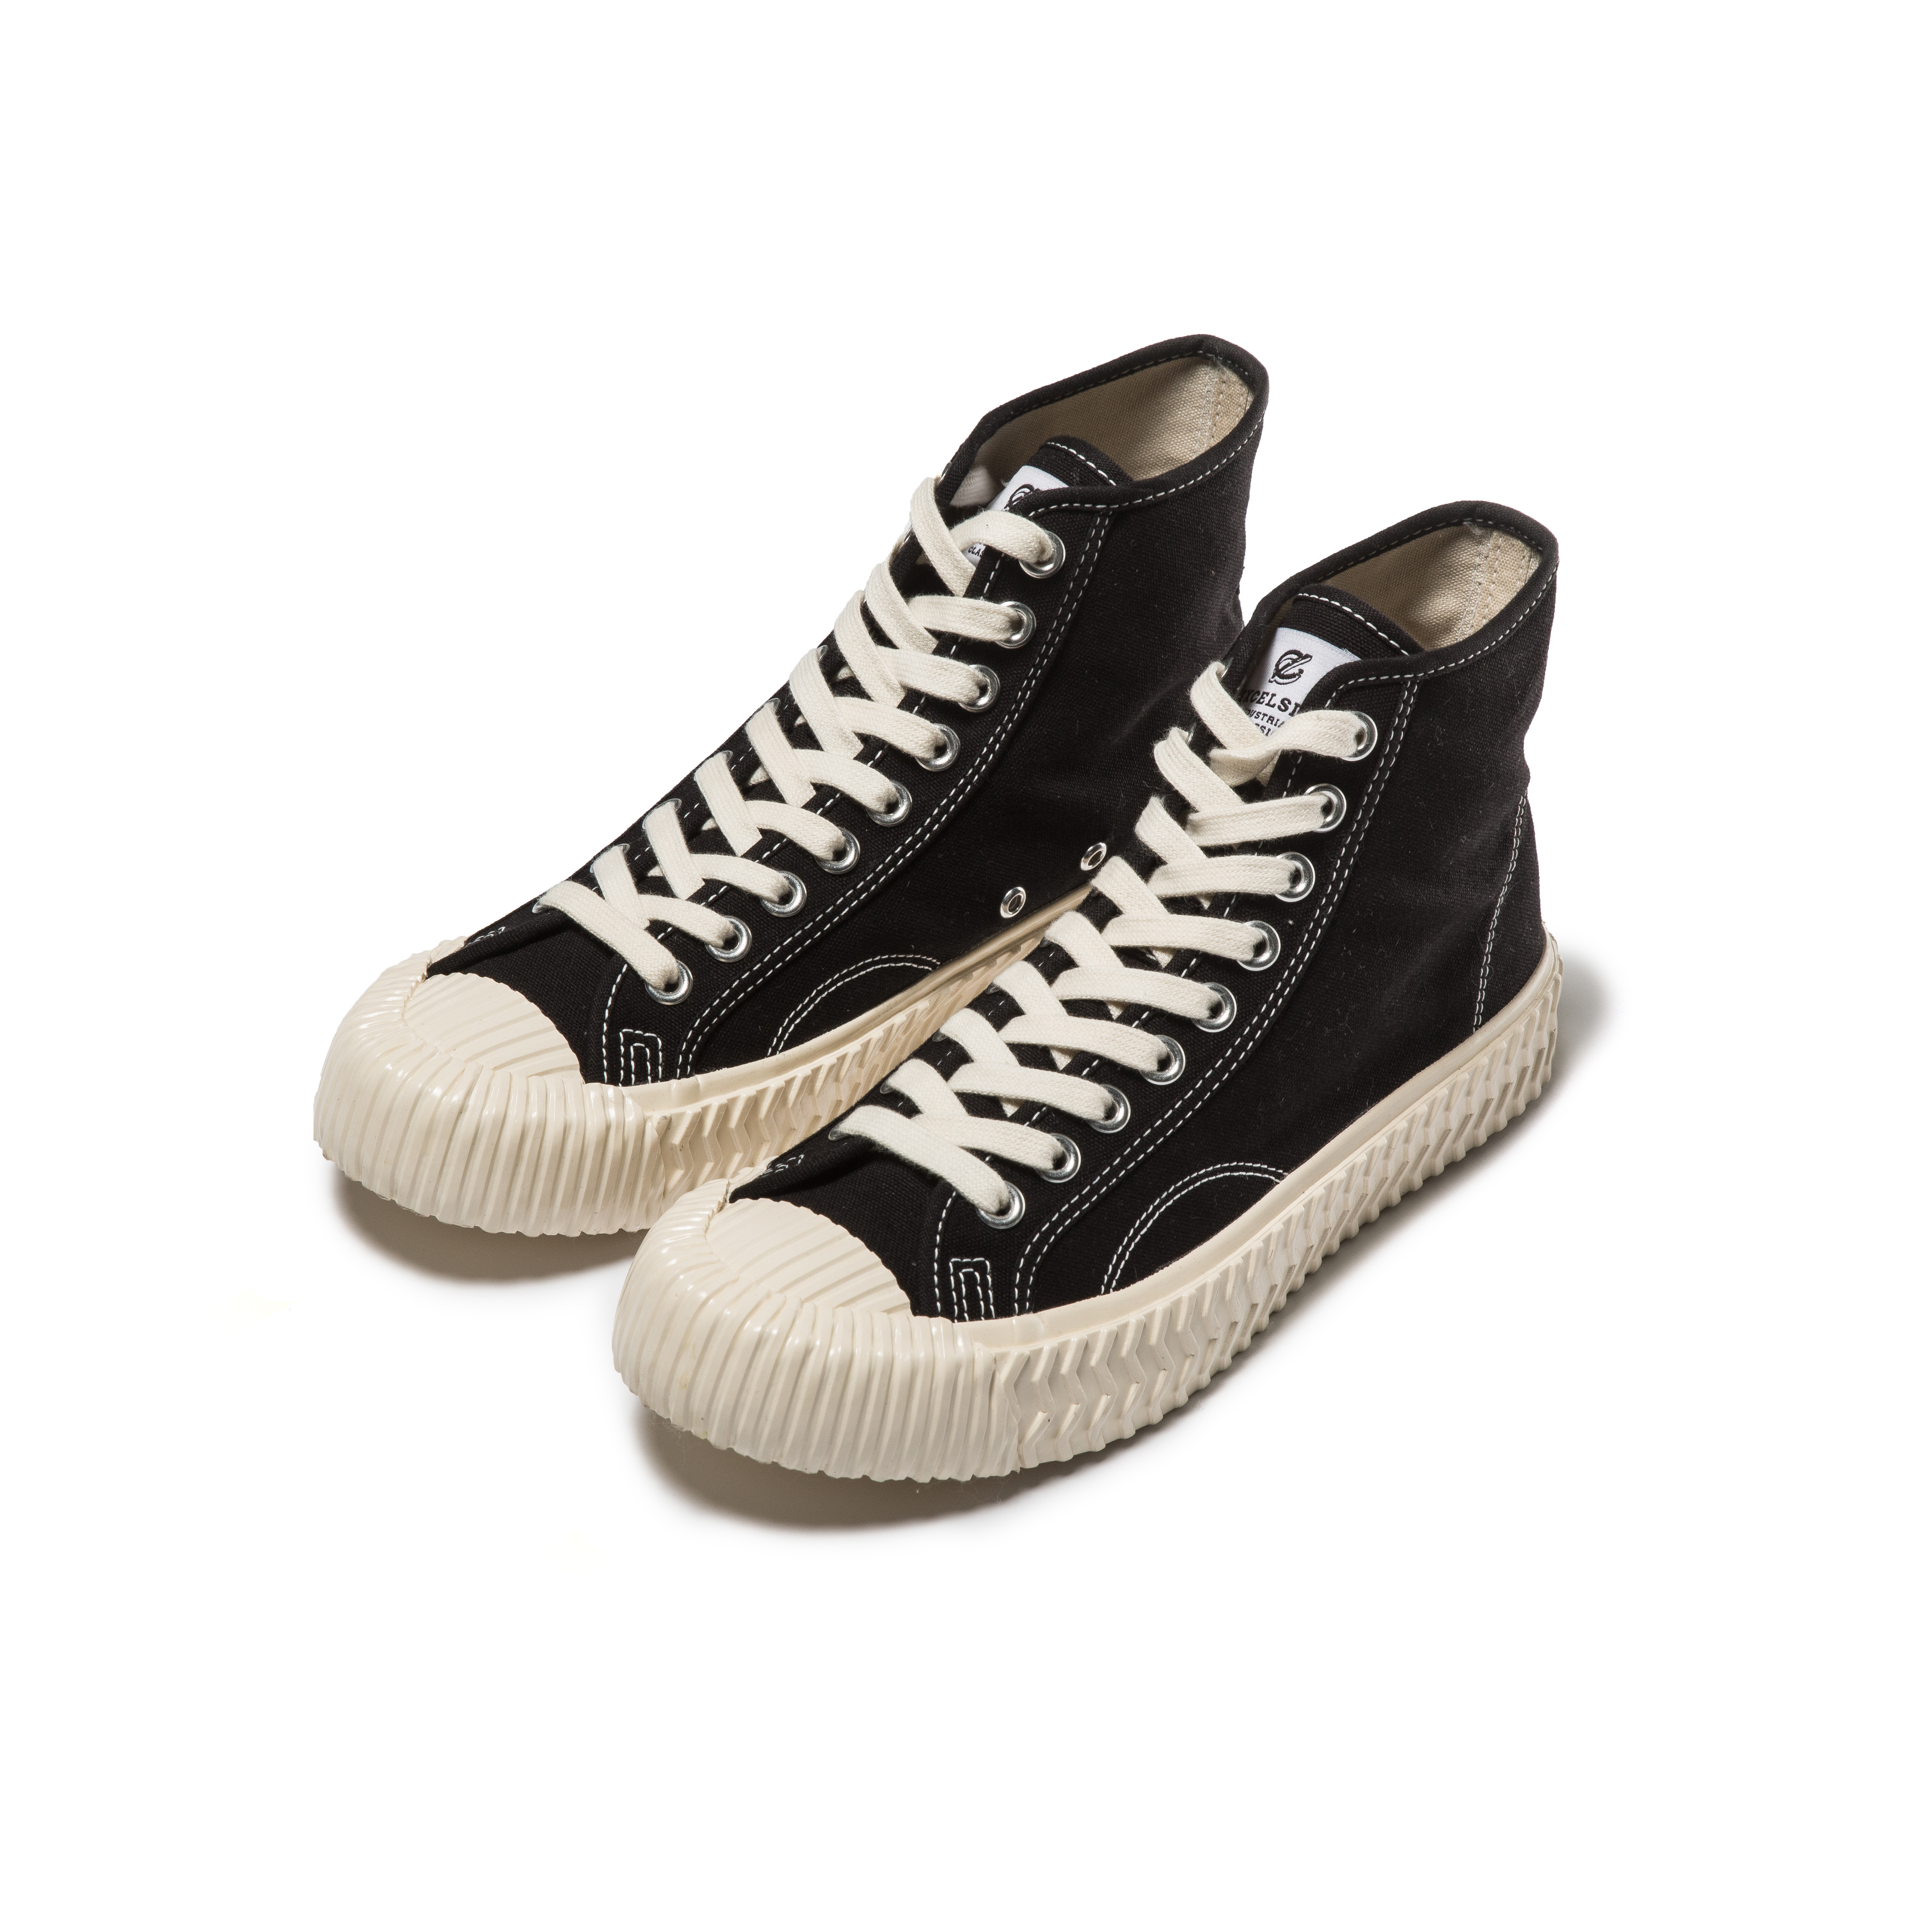 Bolt High Top Trainers by Excelsior